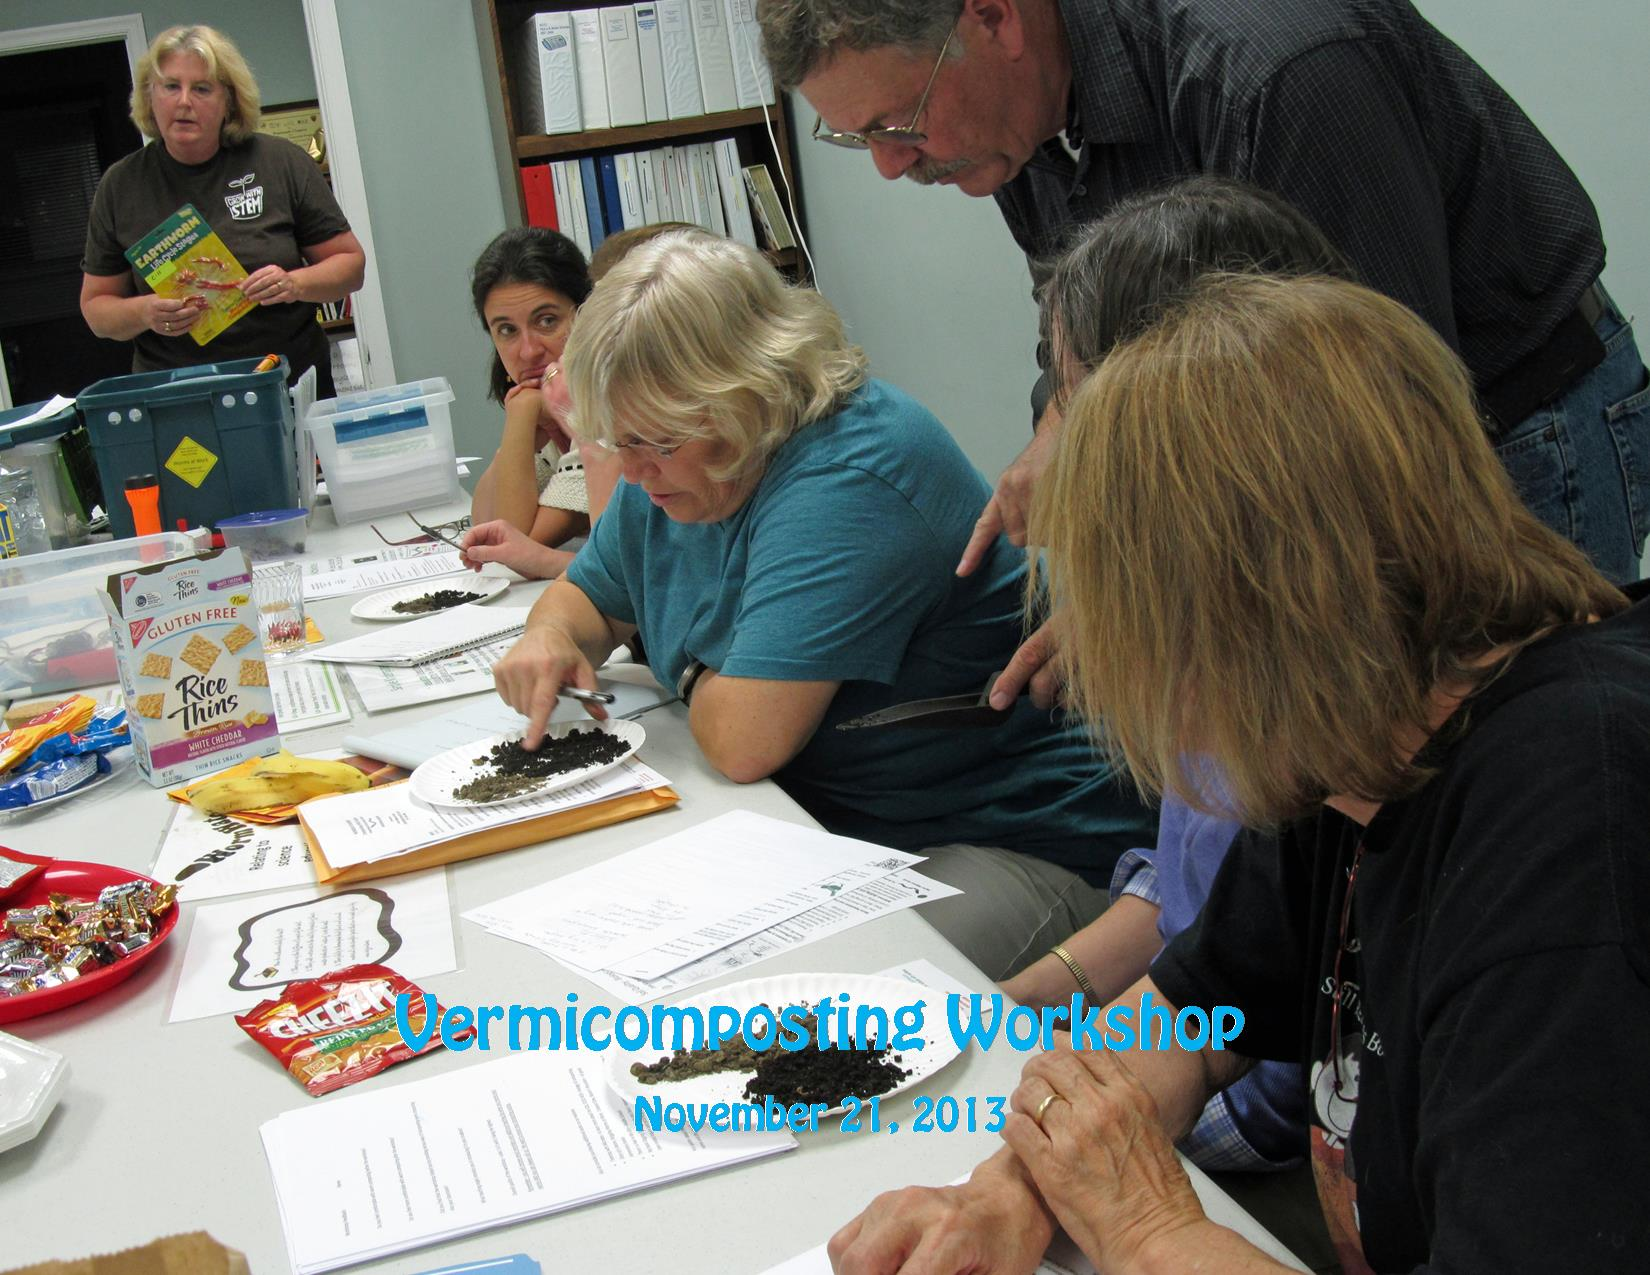 11-21-14 Vermicomposting Workshop